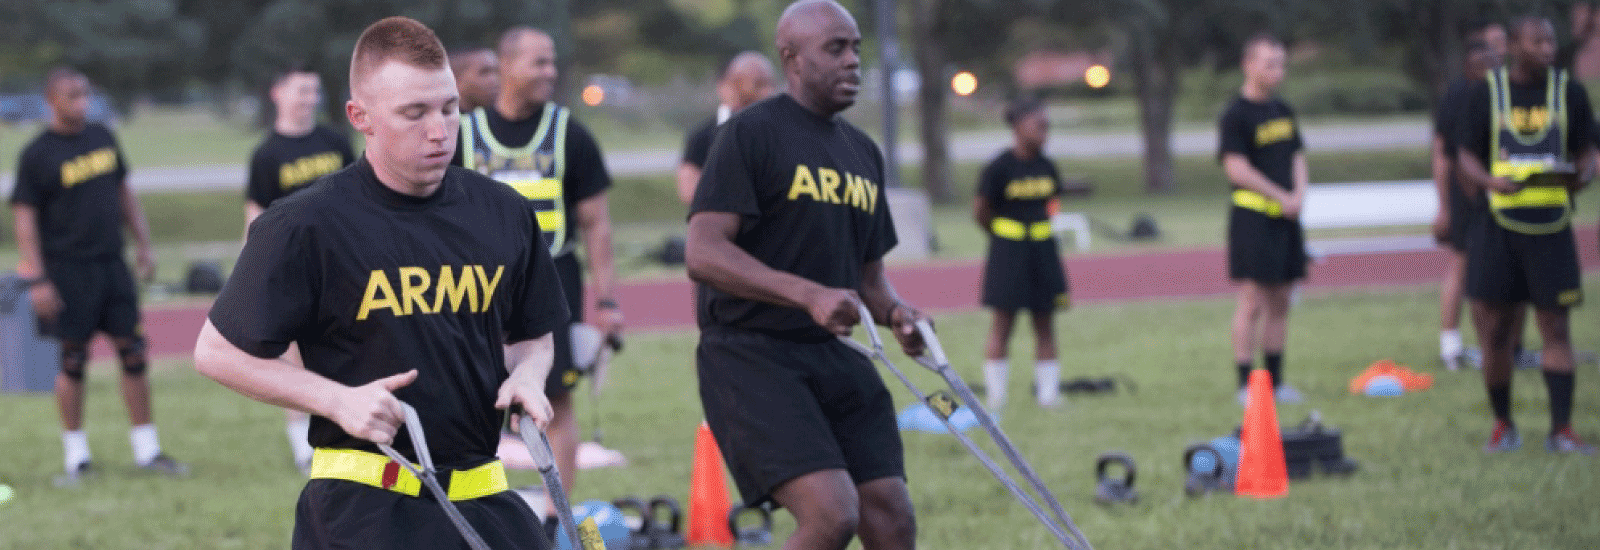 Army Fitness Requirements